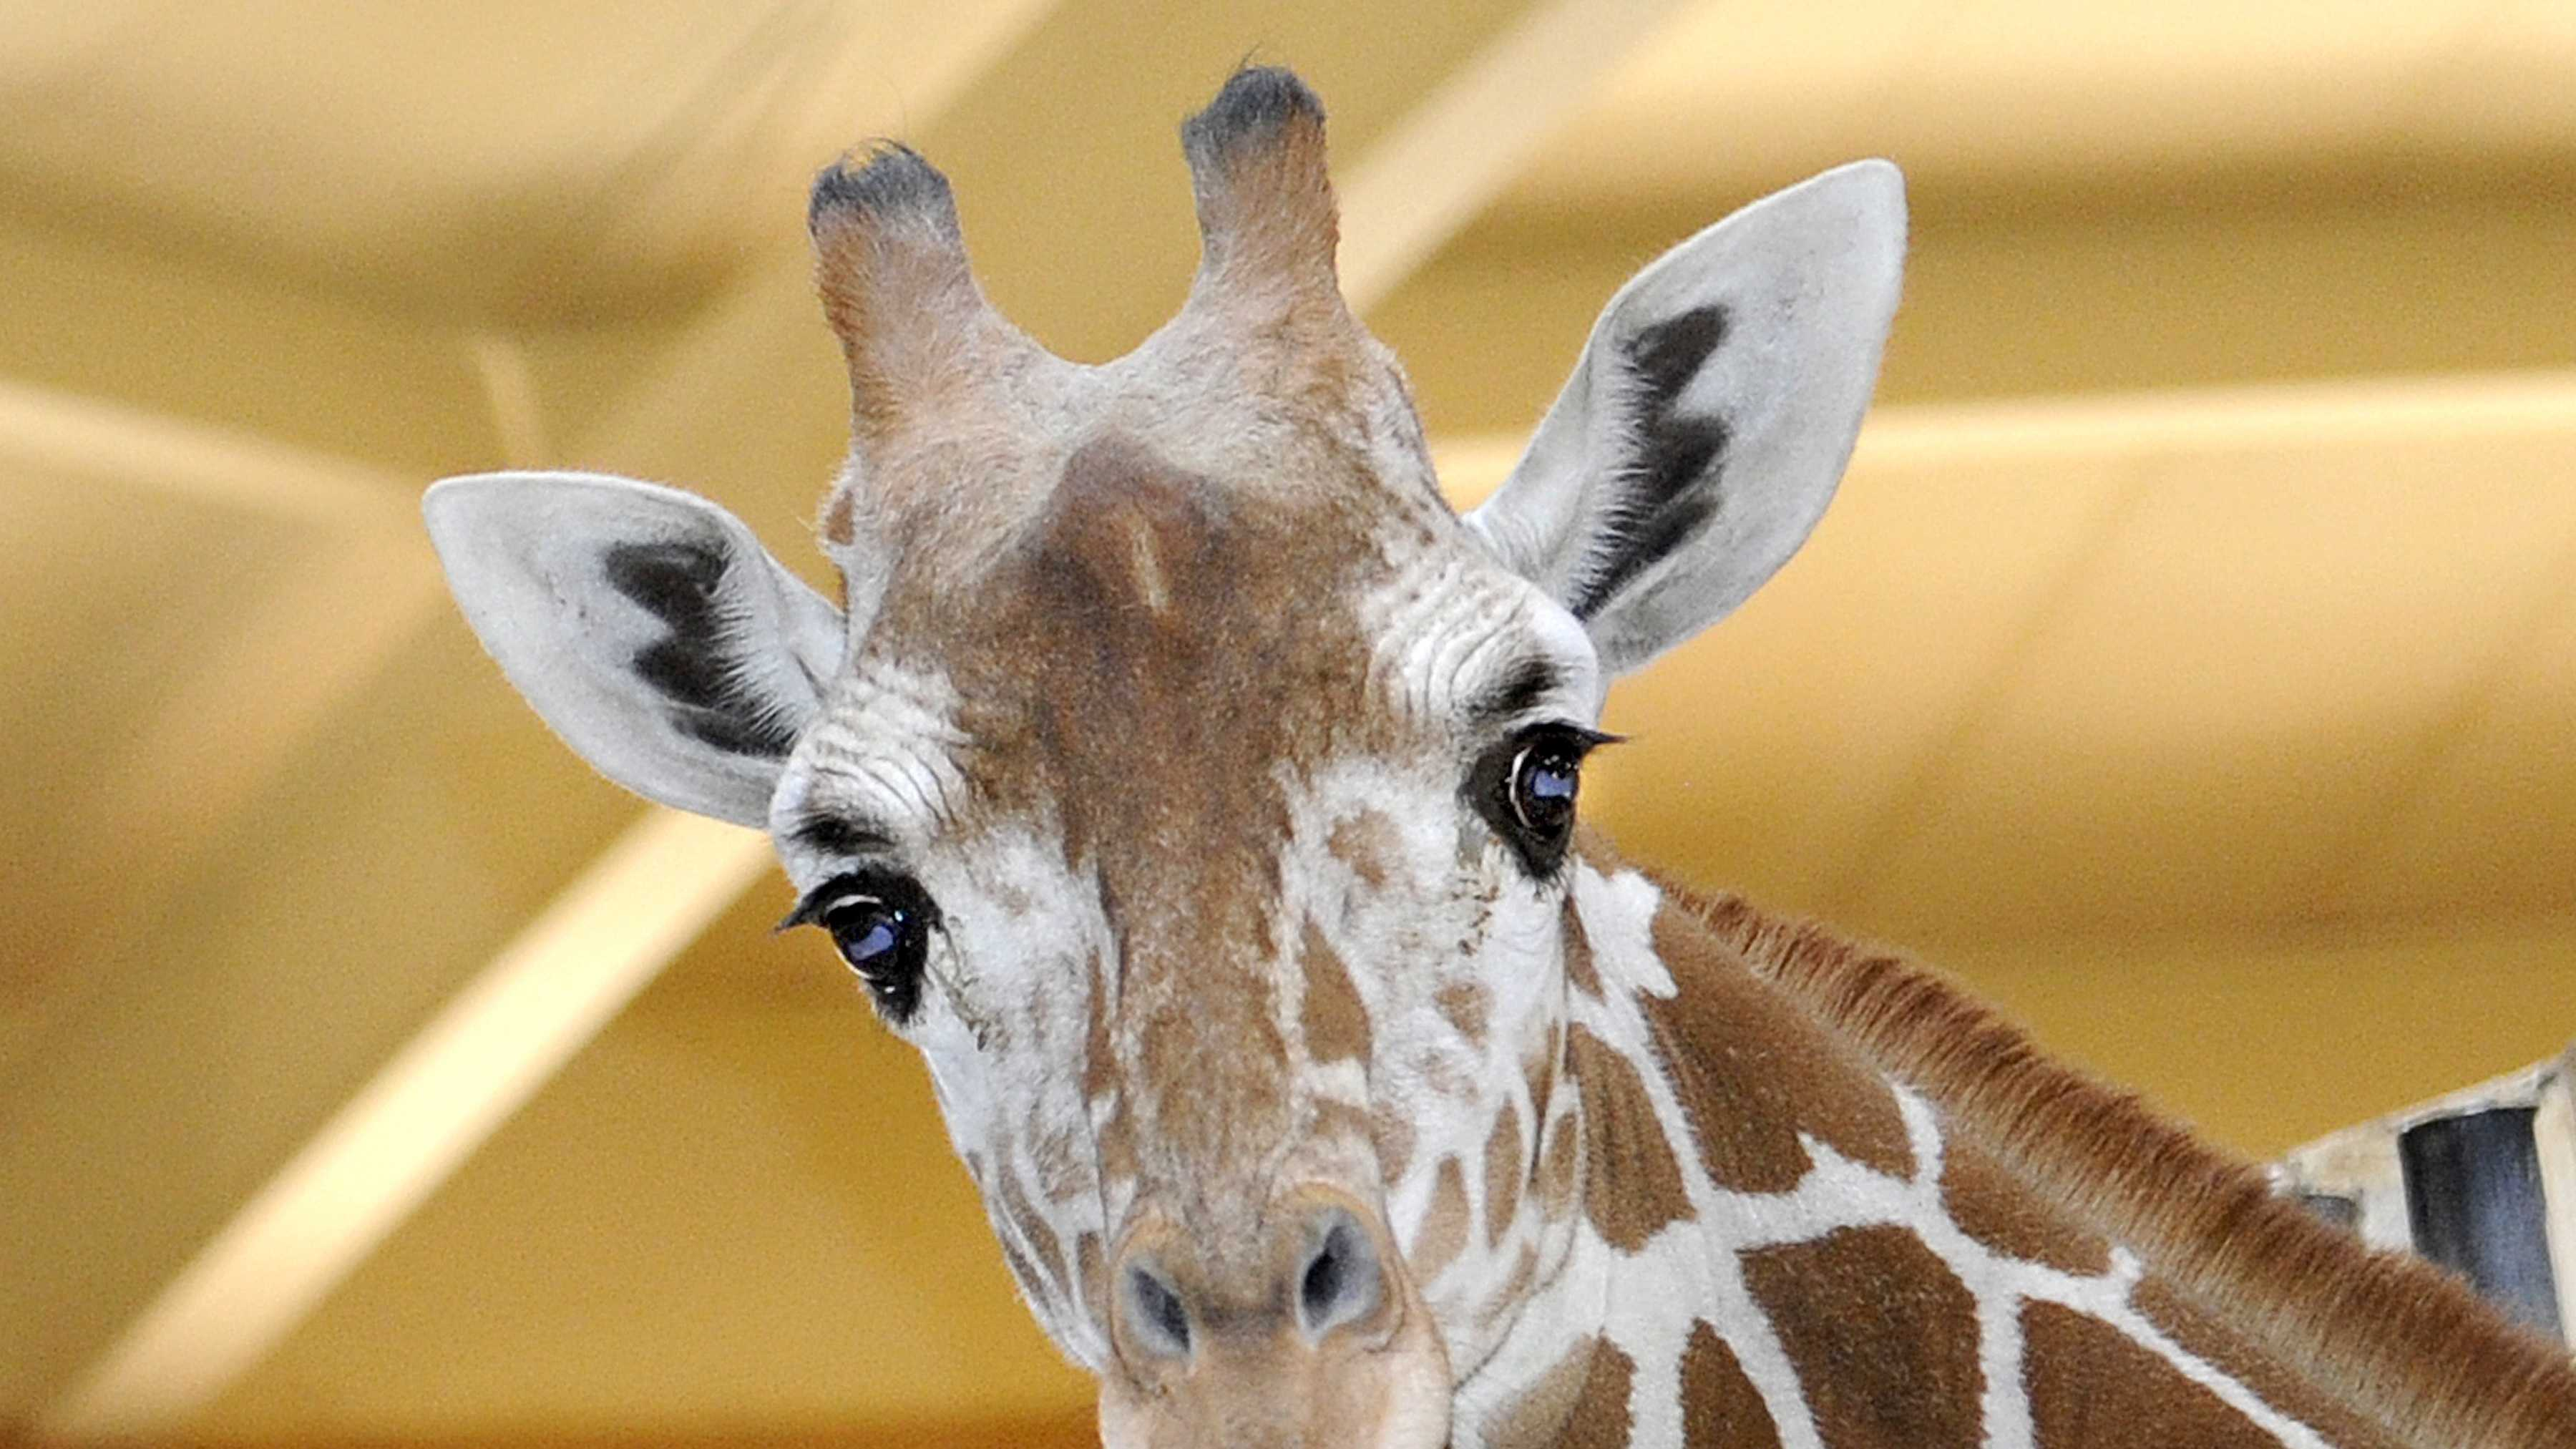 Kesi, a 2-year-old reticulated giraffe, is making her debut at the Maryland Zoo in Baltimore.